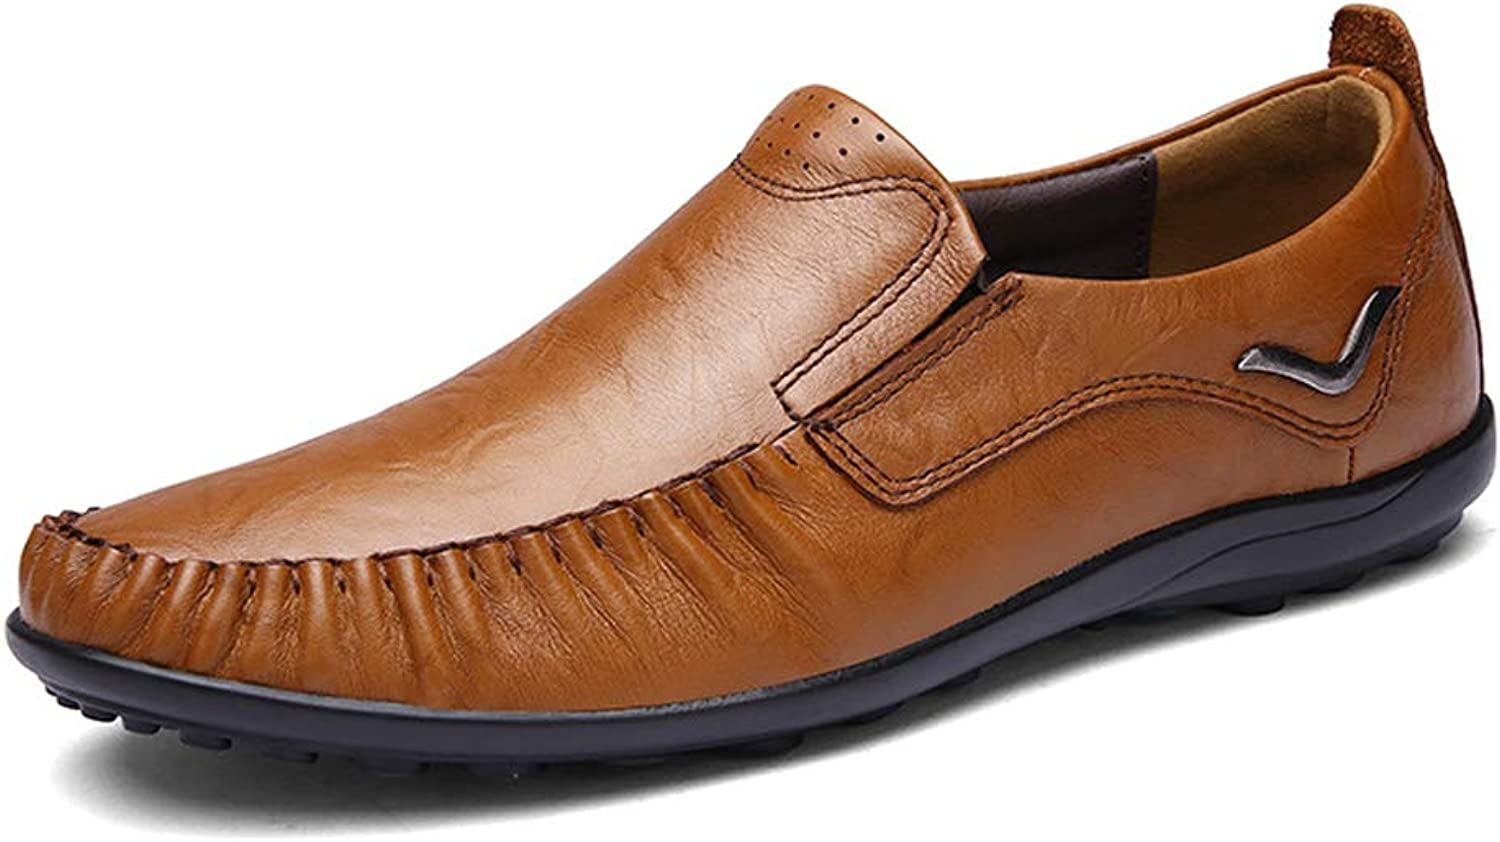 TYX-SS Four Seasons Leather Men'S Boat shoes Lazy shoes Lightweight Driving shoes Large Size Casual shoes